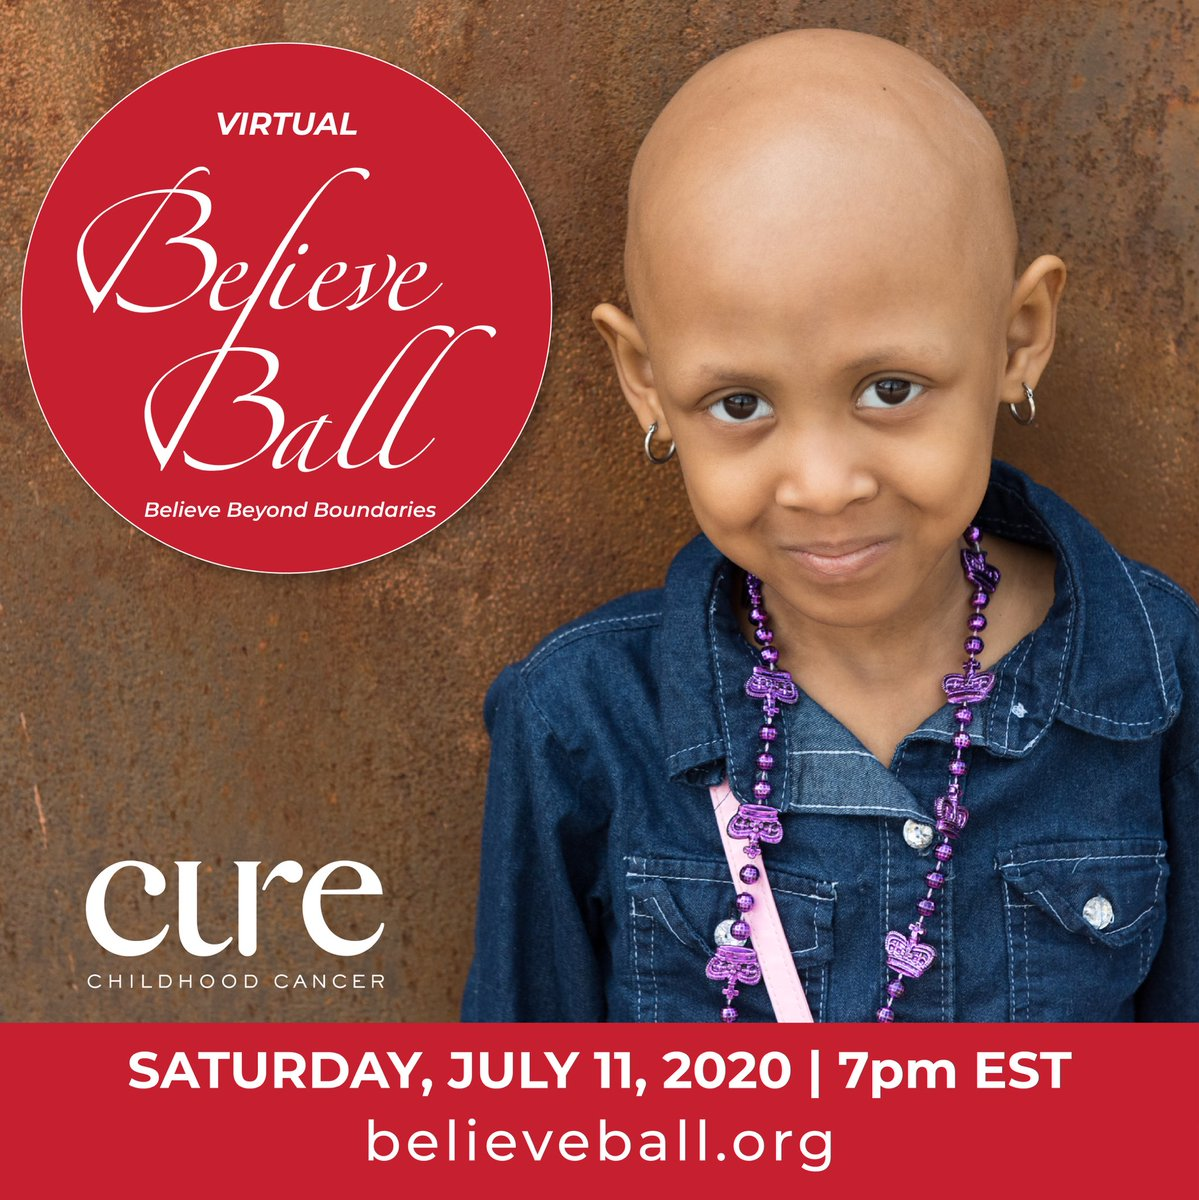 Join me and some special guests on Saturday, July 11 at 7 pm EST at @CUREchildcancer's #VirtualBelieveBall. Tune in at believeball.org and help us beat childhood cancer.